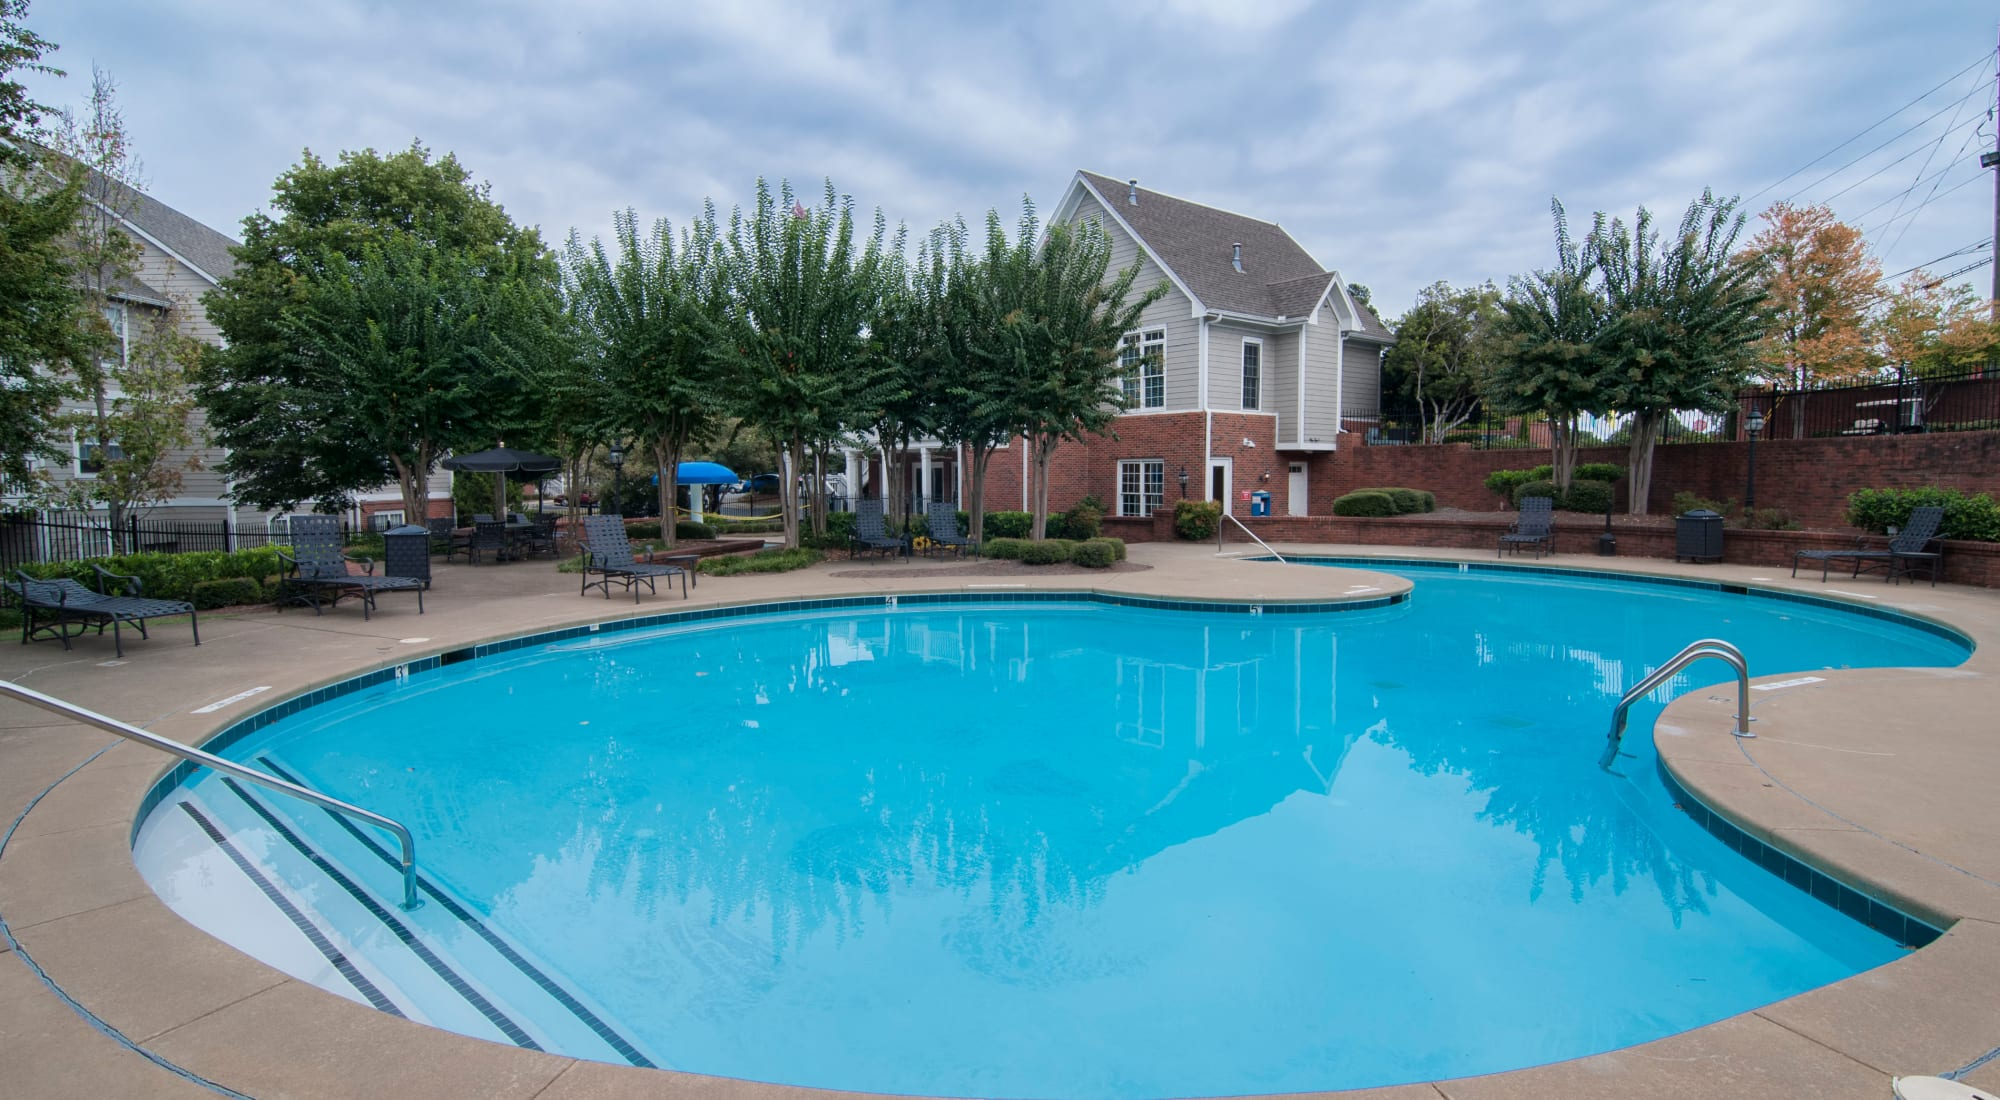 Amenities at Bellingham Apartment Homes in Marietta, Georgia